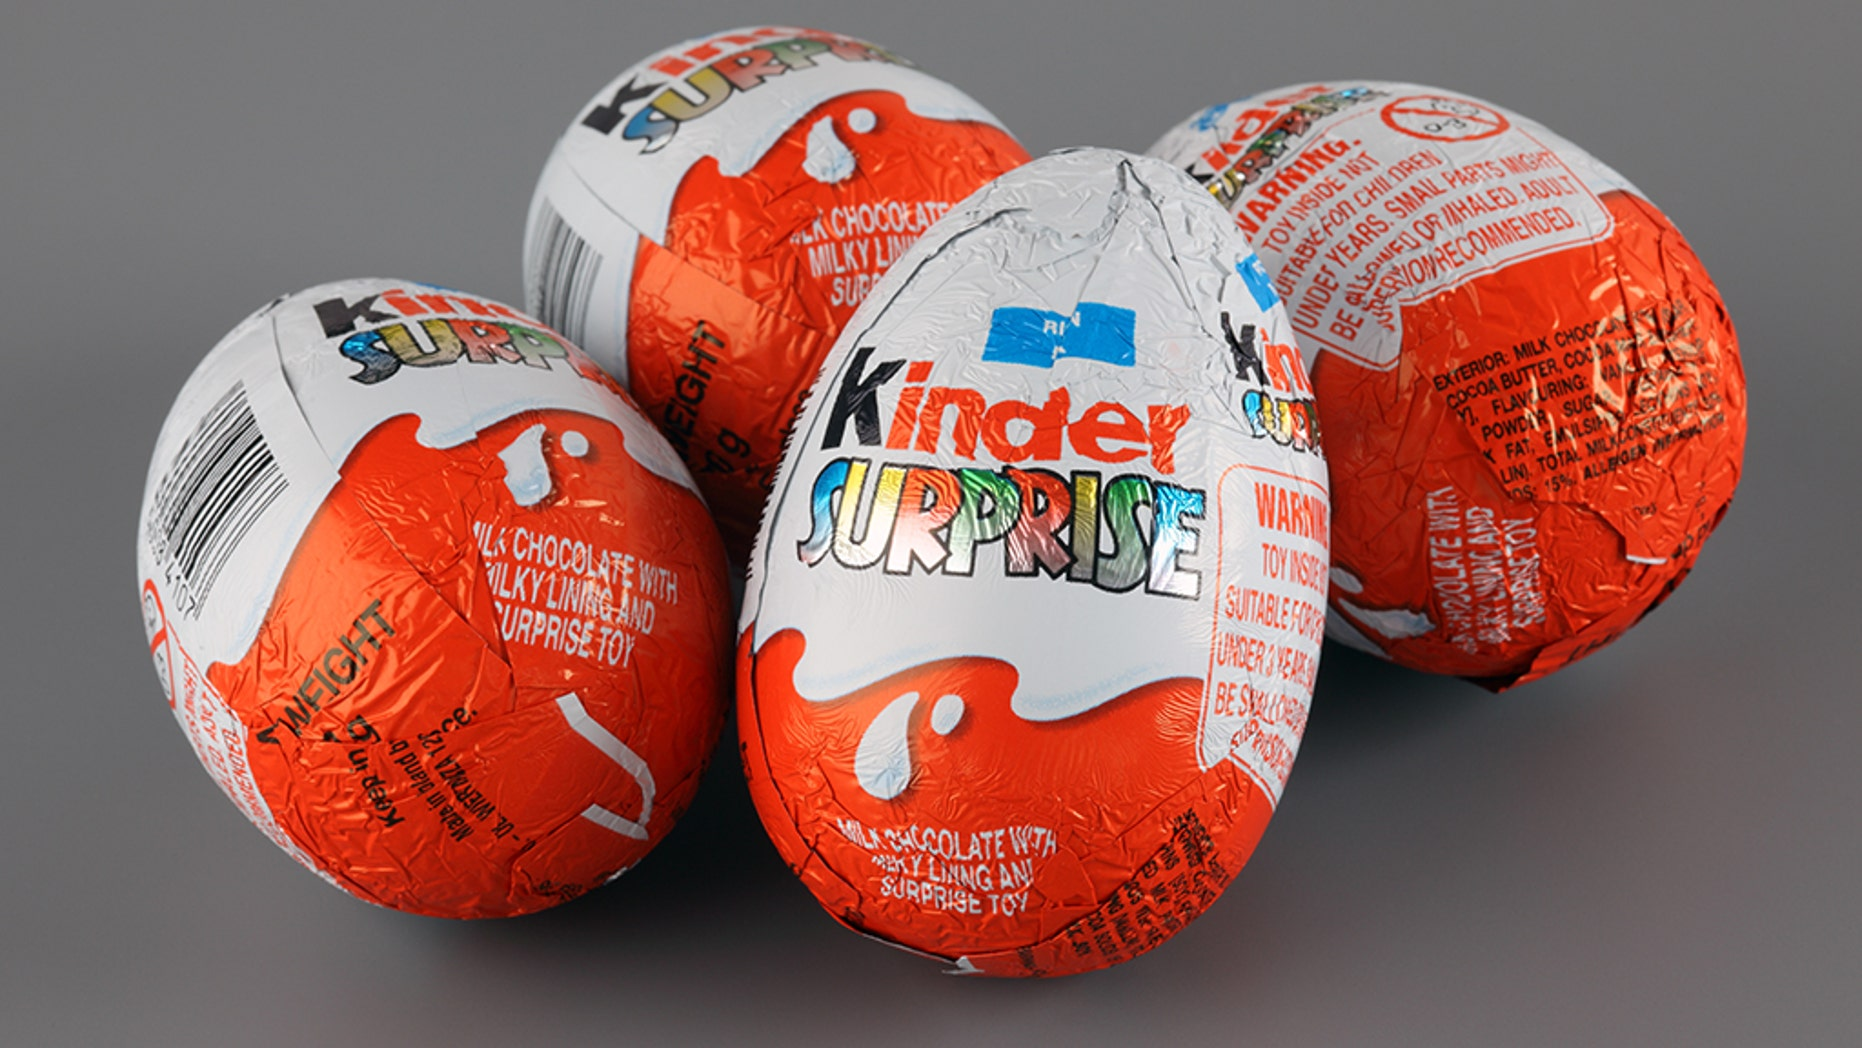 Each Kinder Surprise egg consists of a chocolate shell, a cosmetic capsule, a essence of pronounced capsule, and an outmost foil wrap.